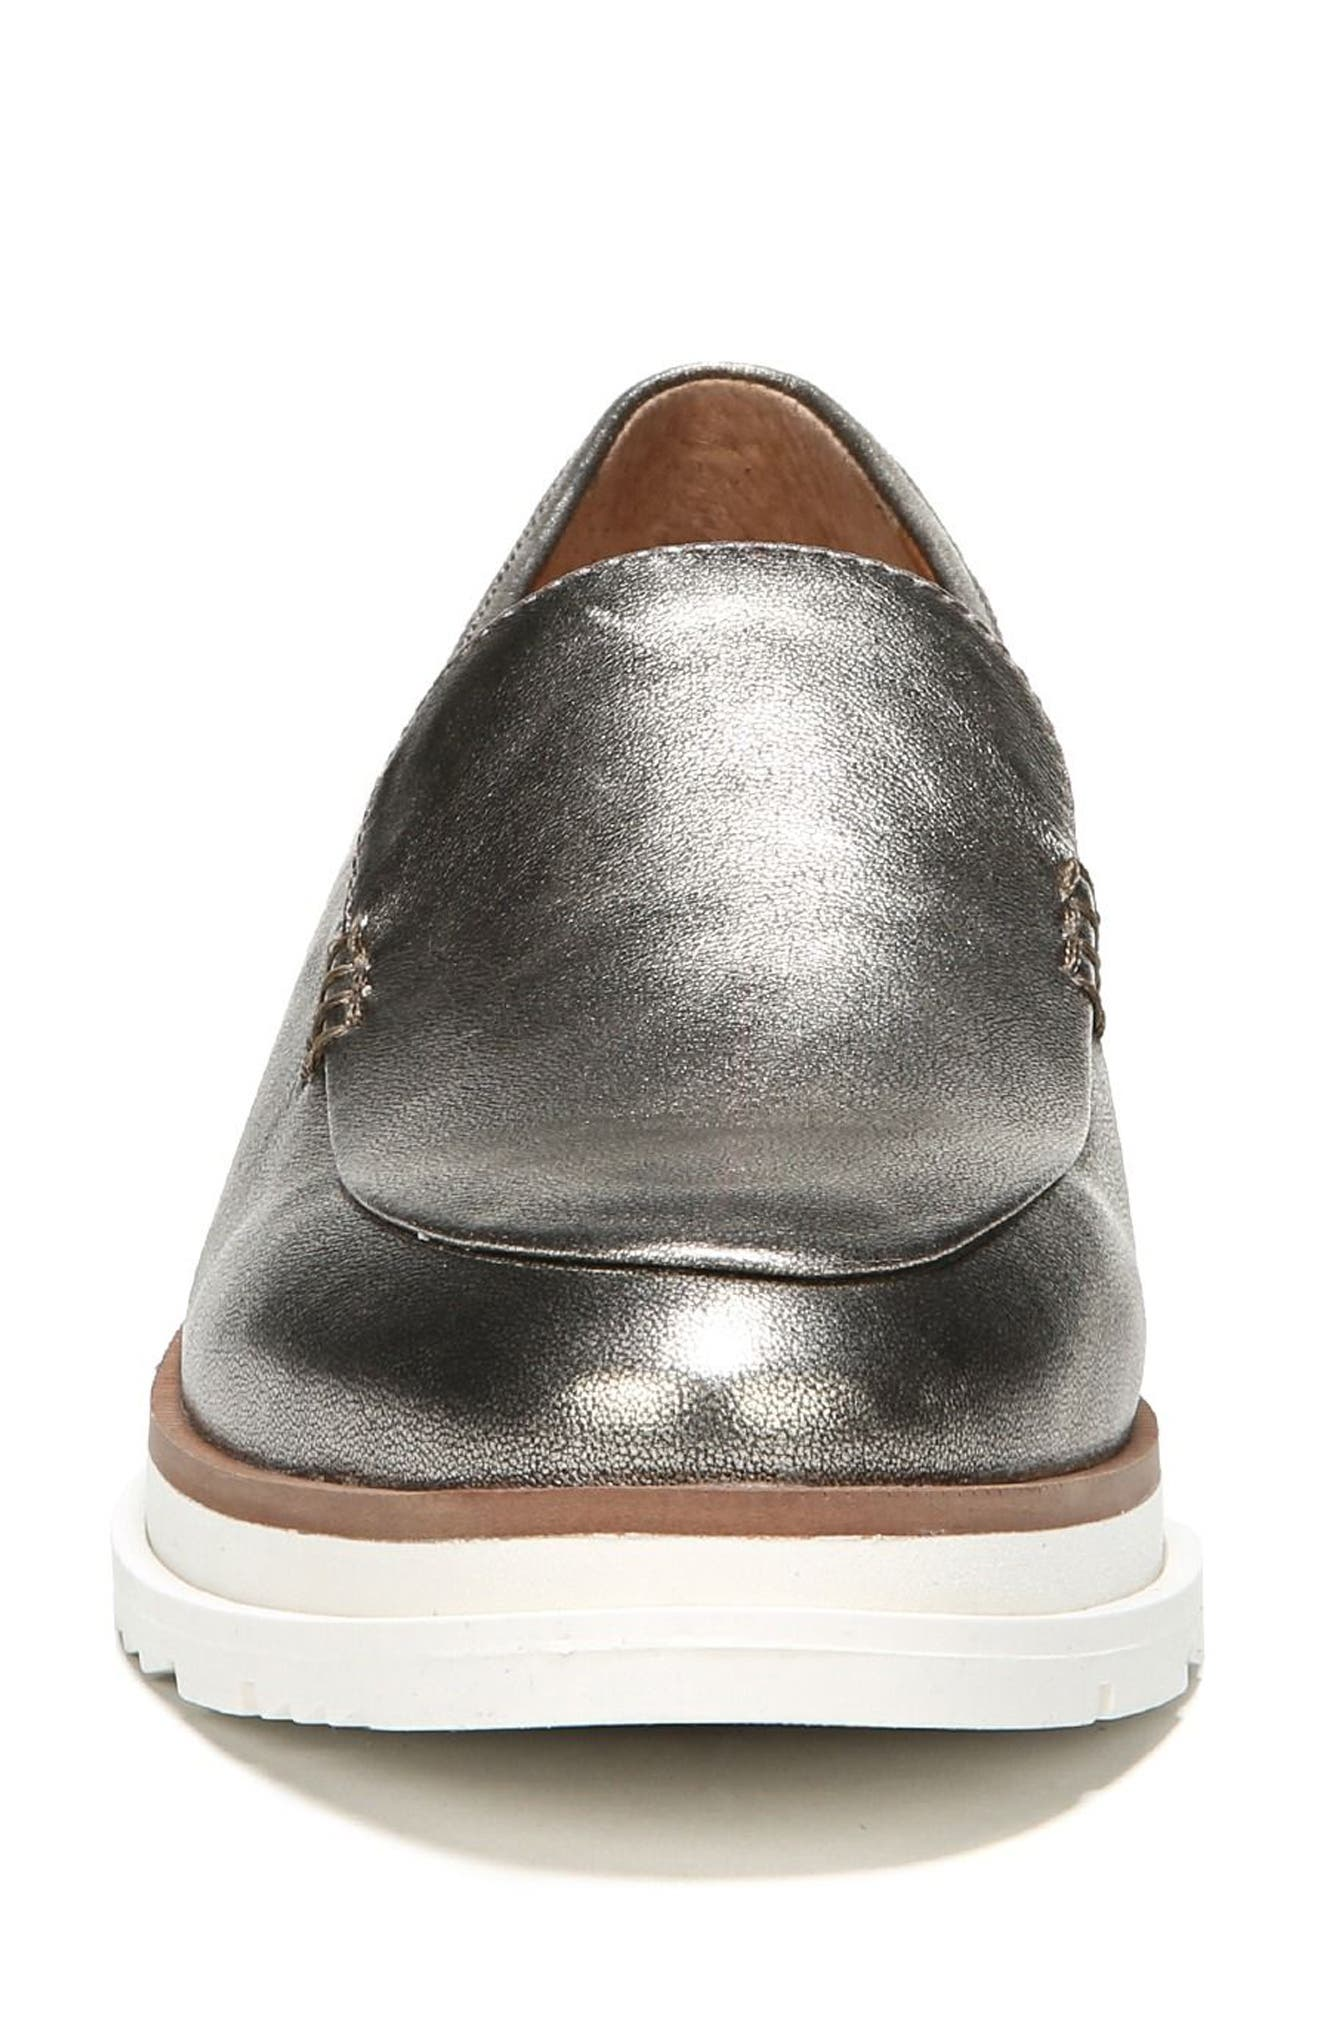 Ayers Loafer Flat,                             Alternate thumbnail 40, color,